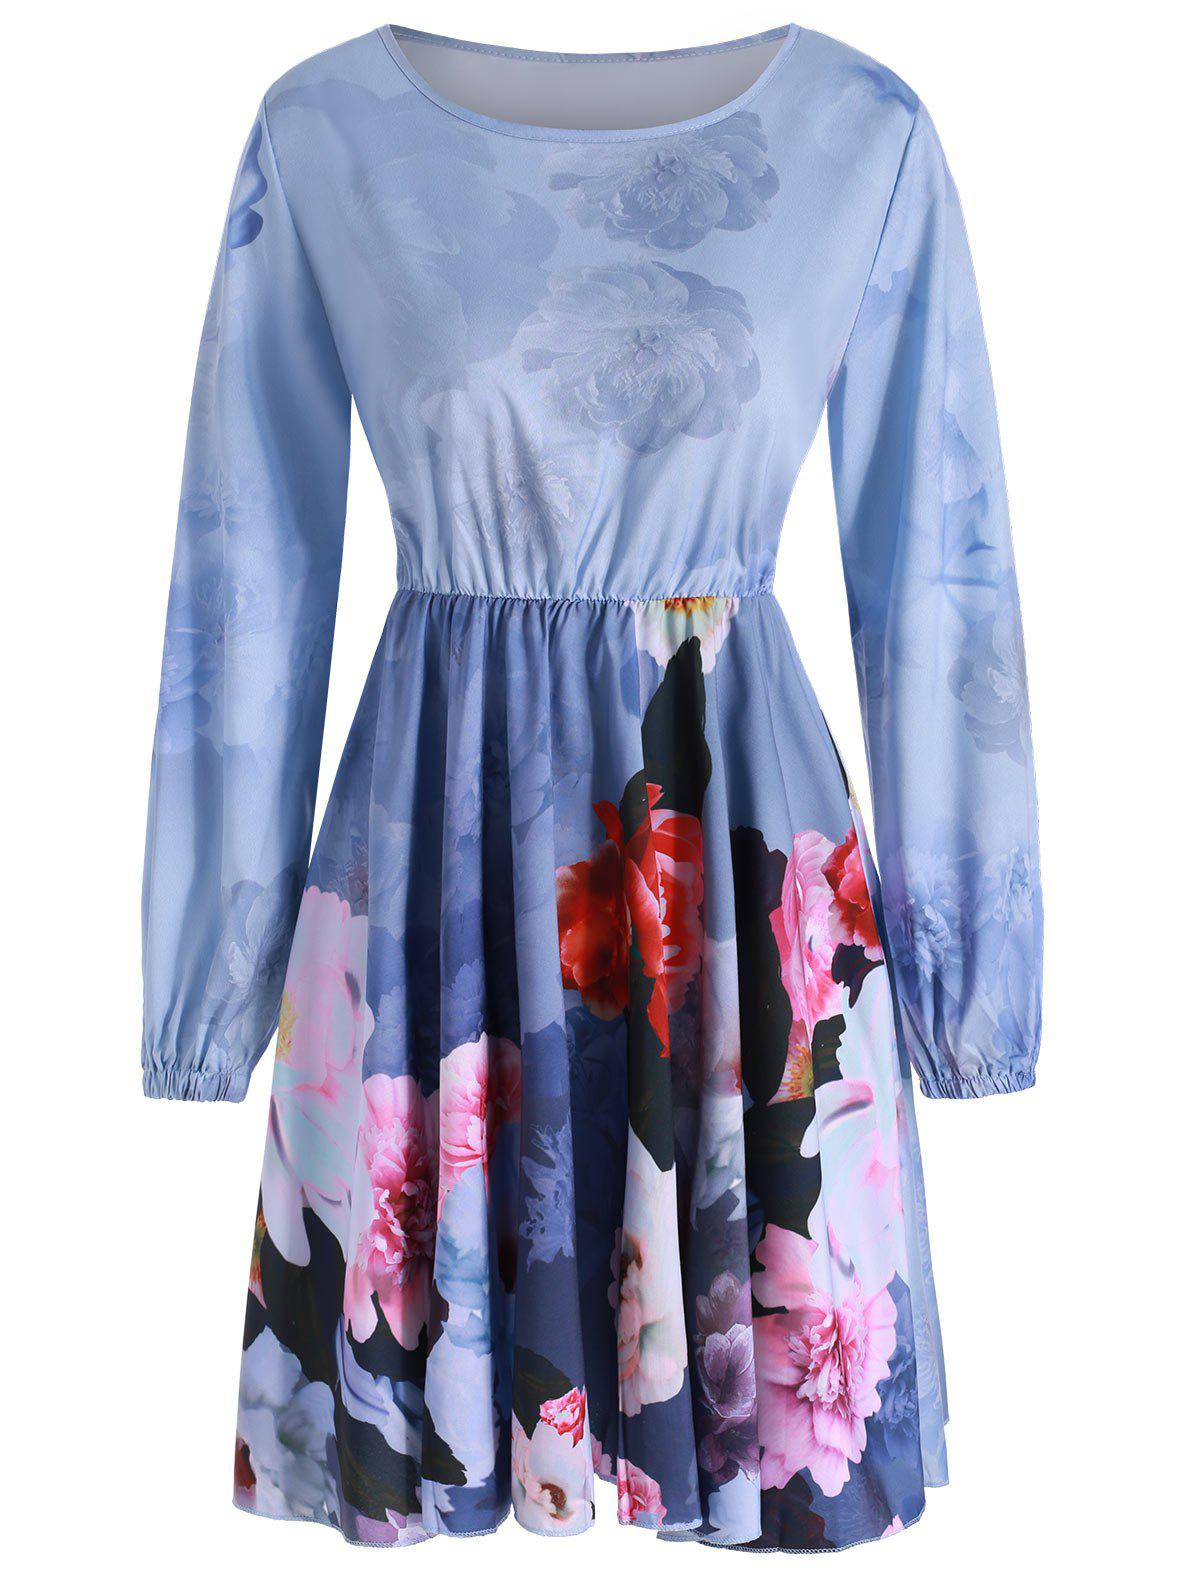 Floral Print Long Sleeves Flare Dress - BLUE GRAY L